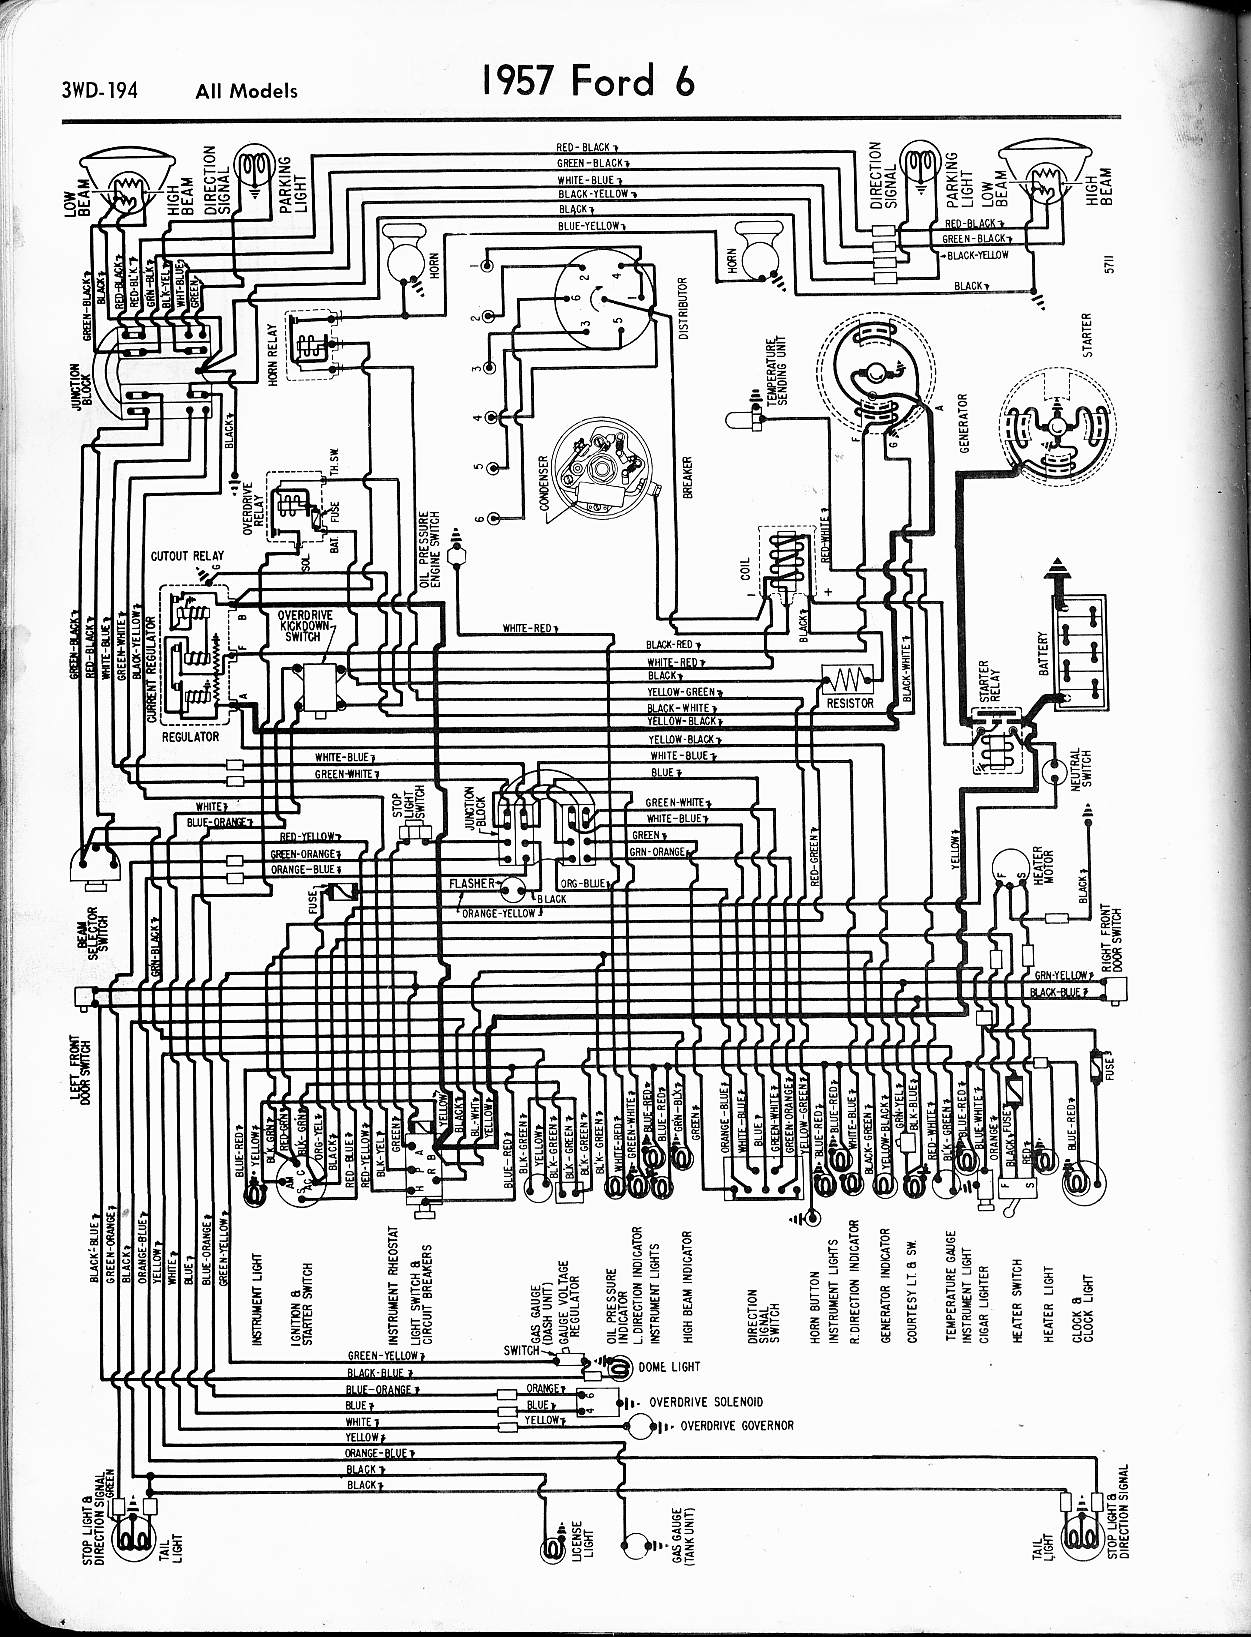 1950 S Light Switch Wiring Diagram - Trusted Wiring Diagram •